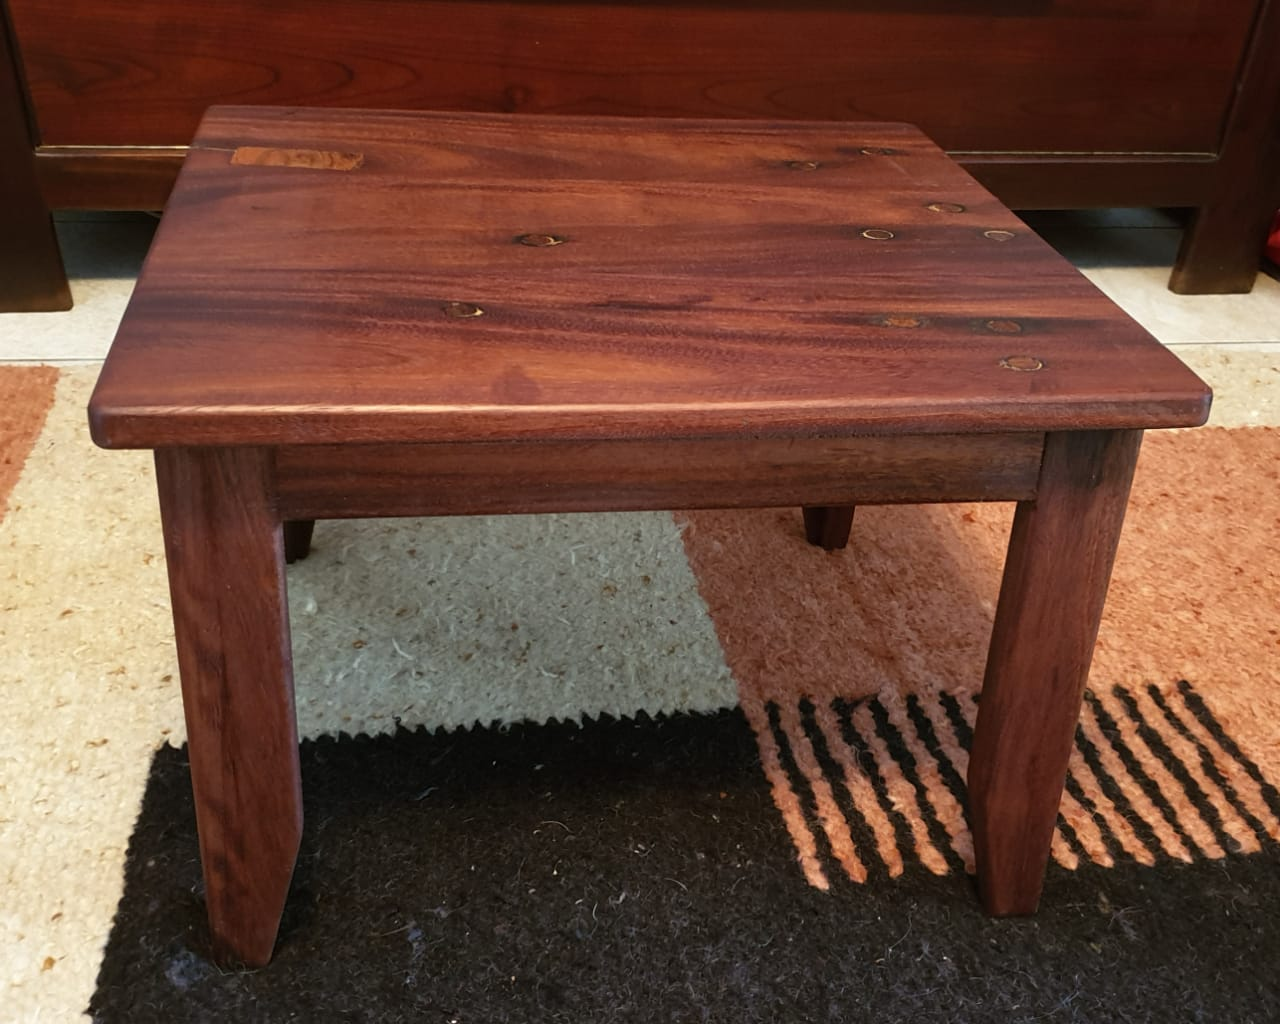 Sleeper Wood Table from the side